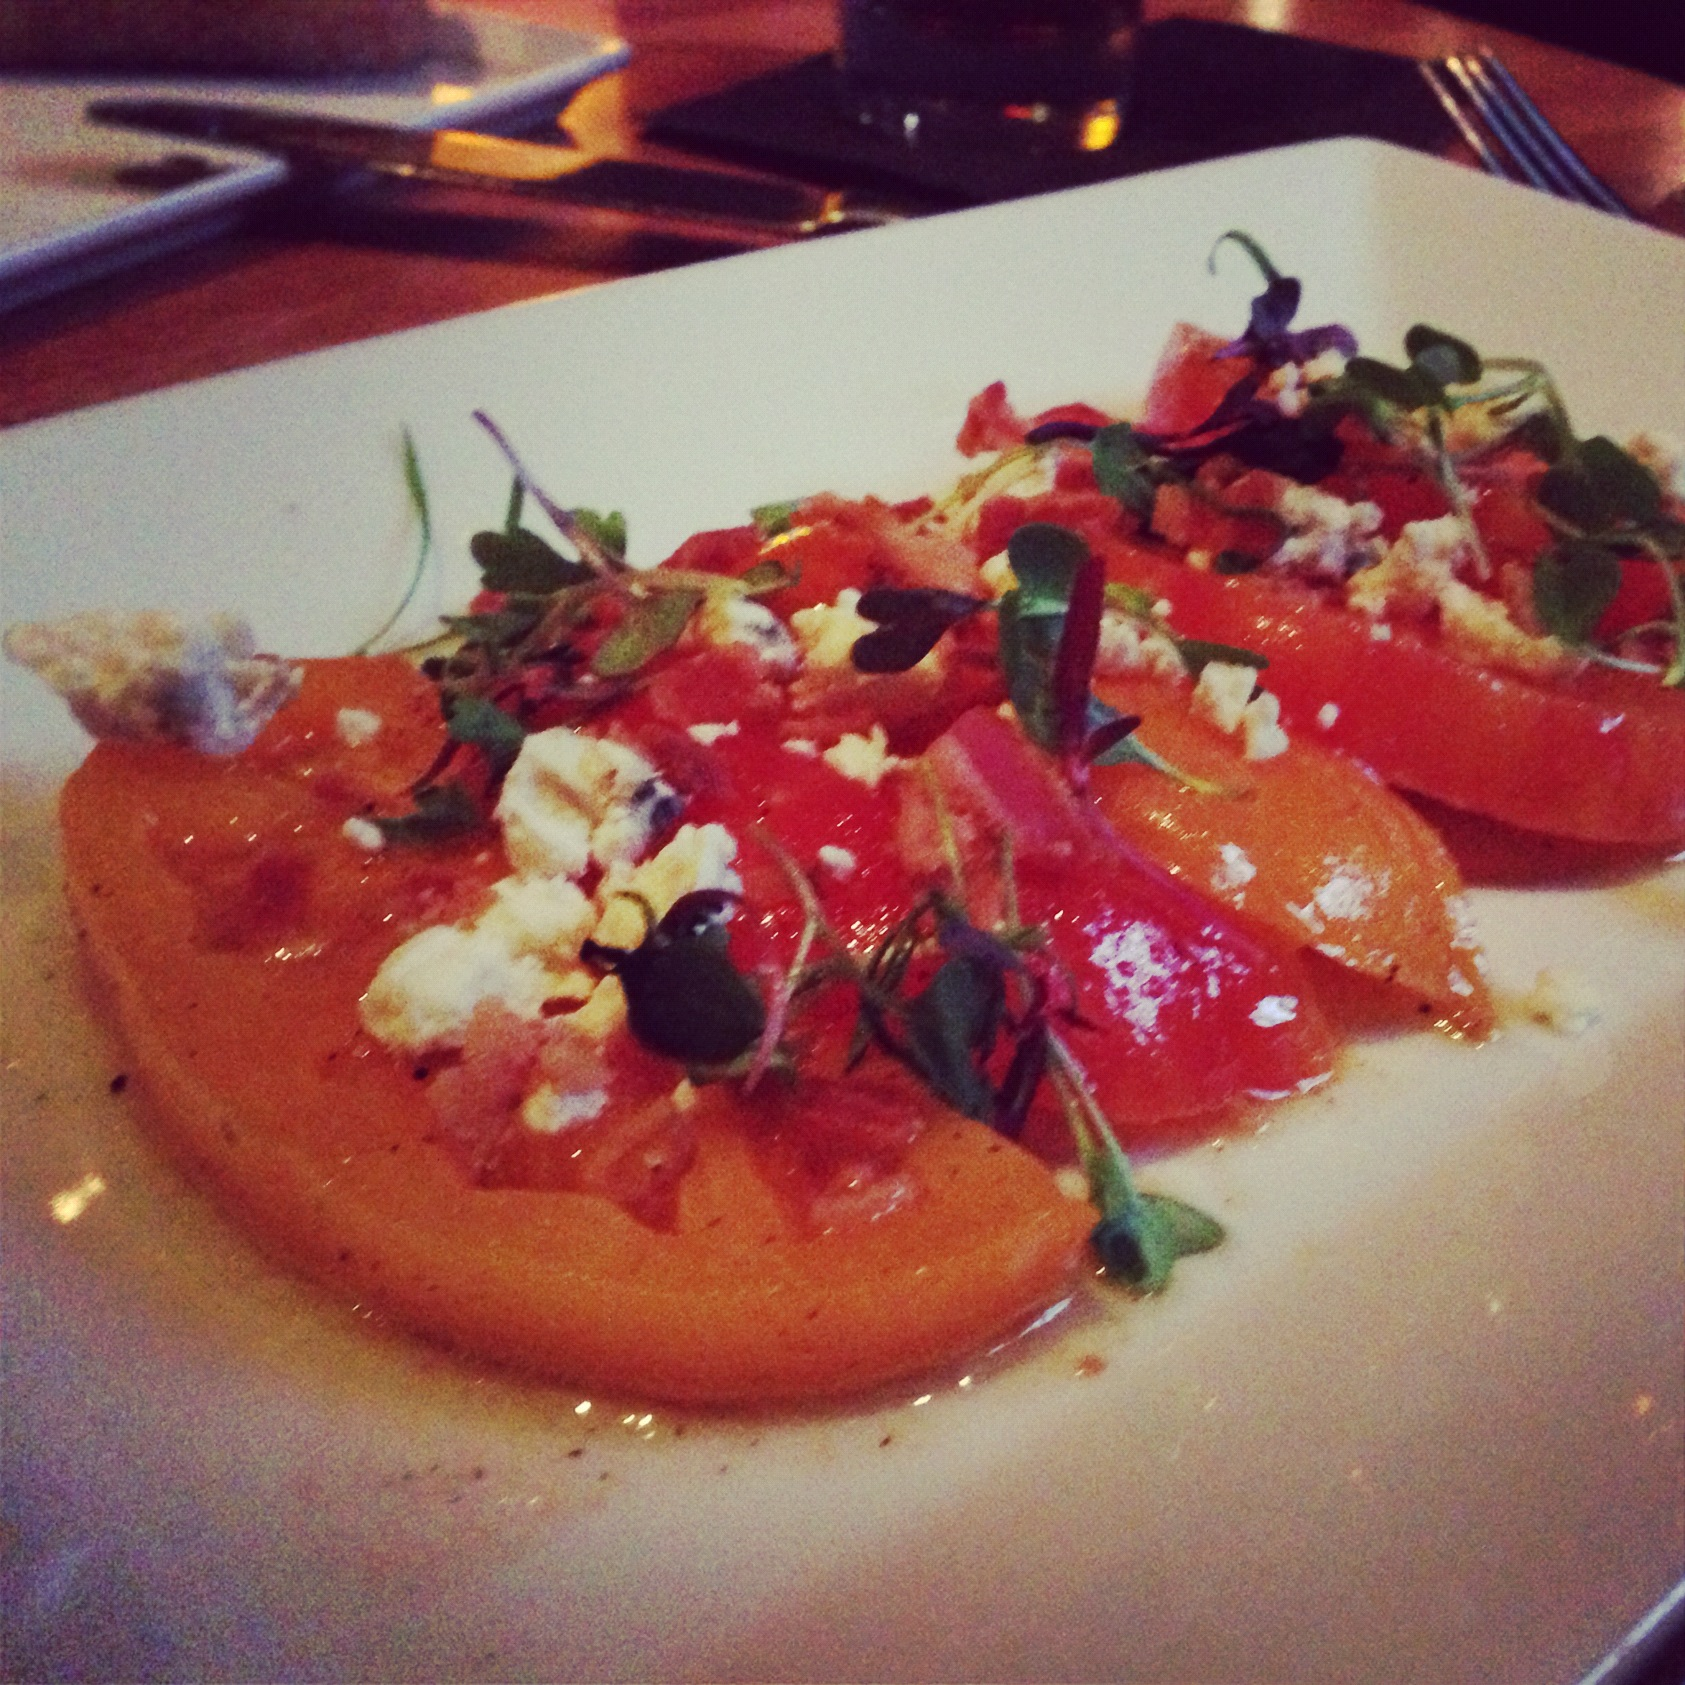 MESA Heirloom Tomato Salad with Blue Cheese